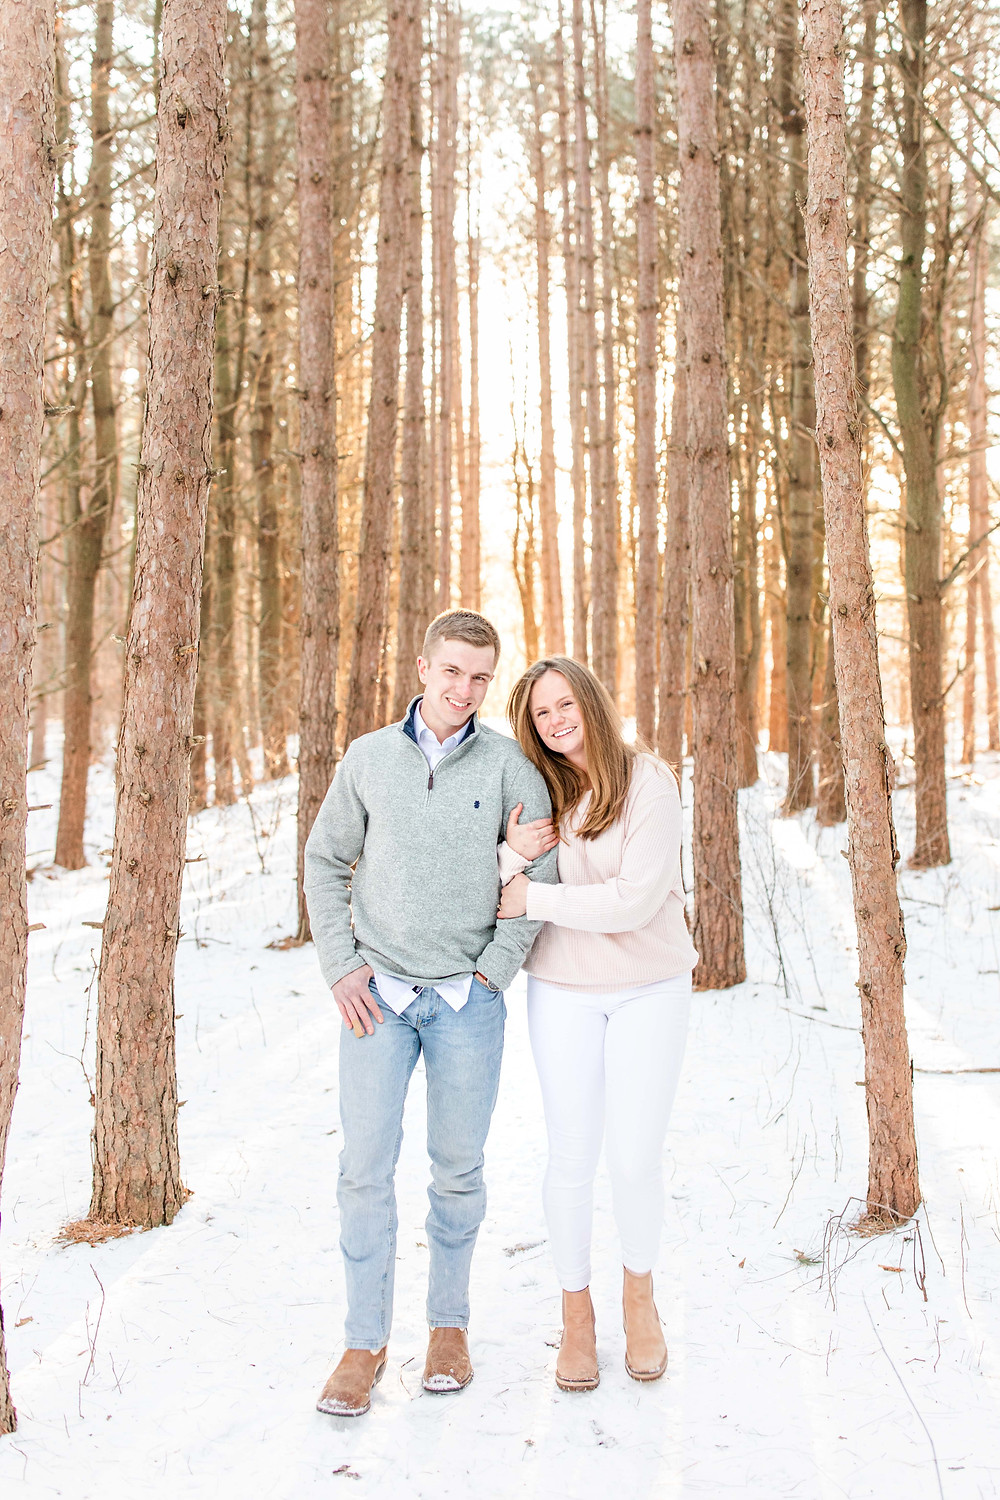 Josh and Andrea wedding photography husband and wife team michigan engagement session Al sabo land preserve couple standing smiling in snowy woods